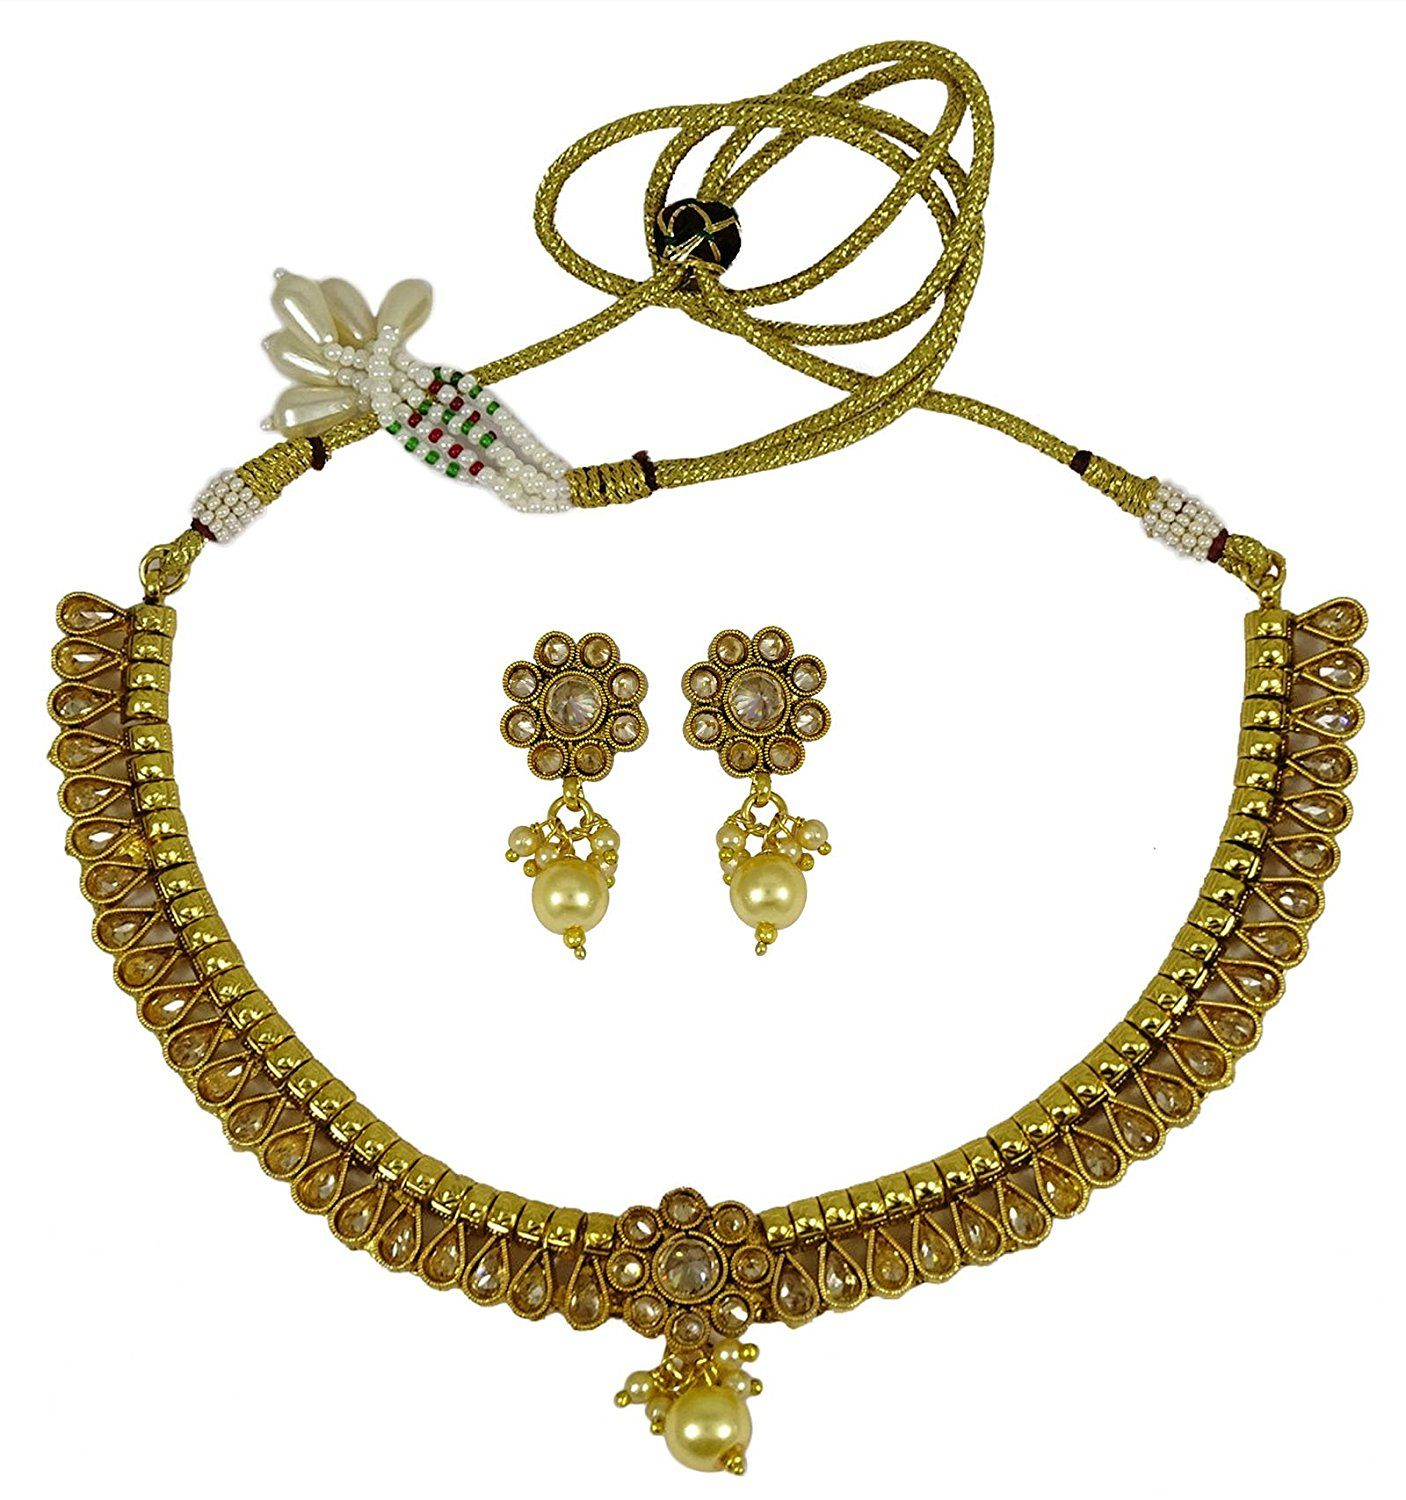 Matra 18K Goldplated Indian Women 2 Pcs Pendant Necklace Earring Set Wedding Jewellery